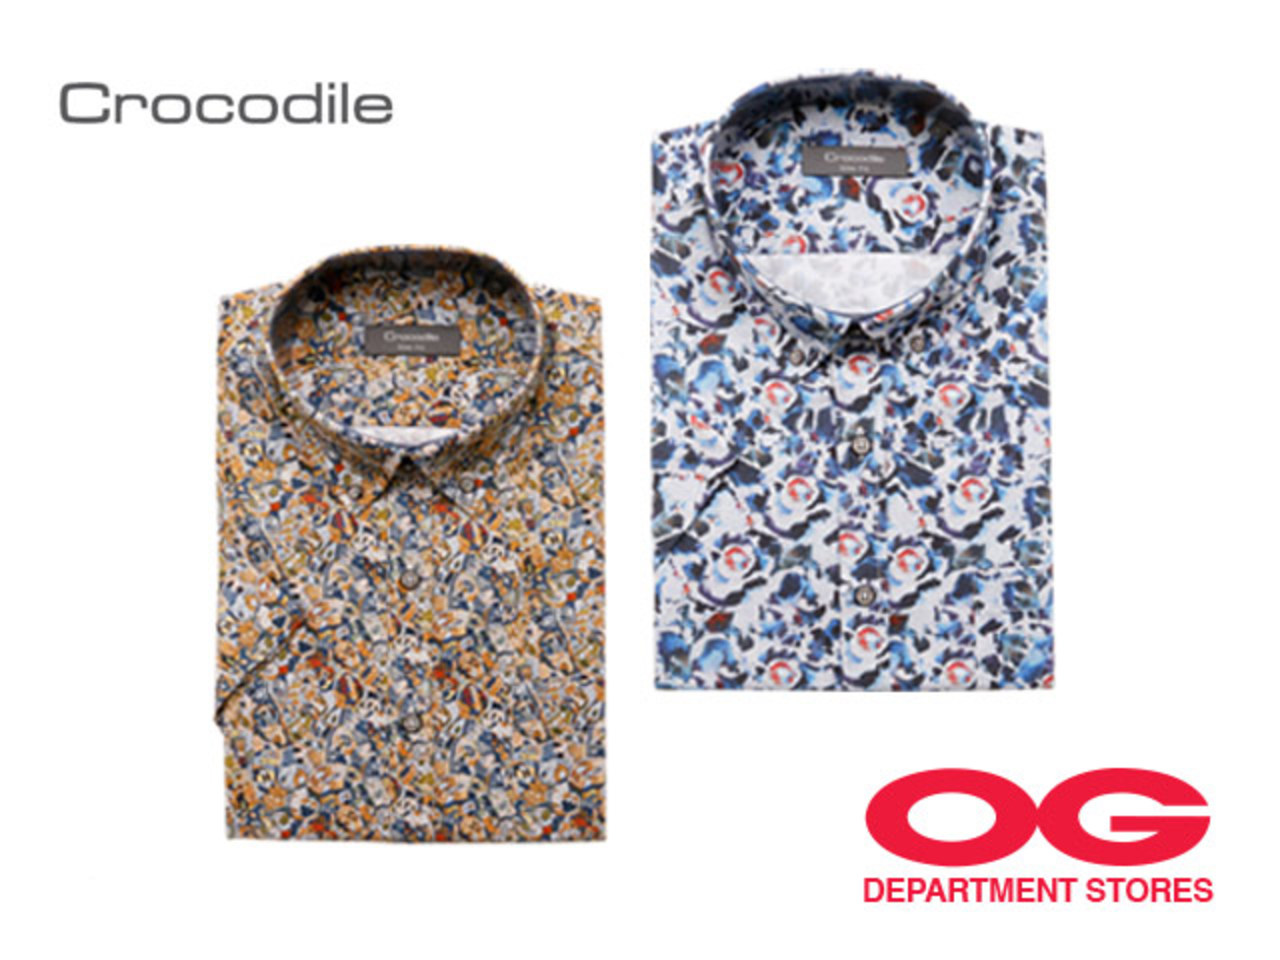 CROCODILE 100% Cotton Short-Sleeved Shirt (Selected Designs) @ 2 for $80